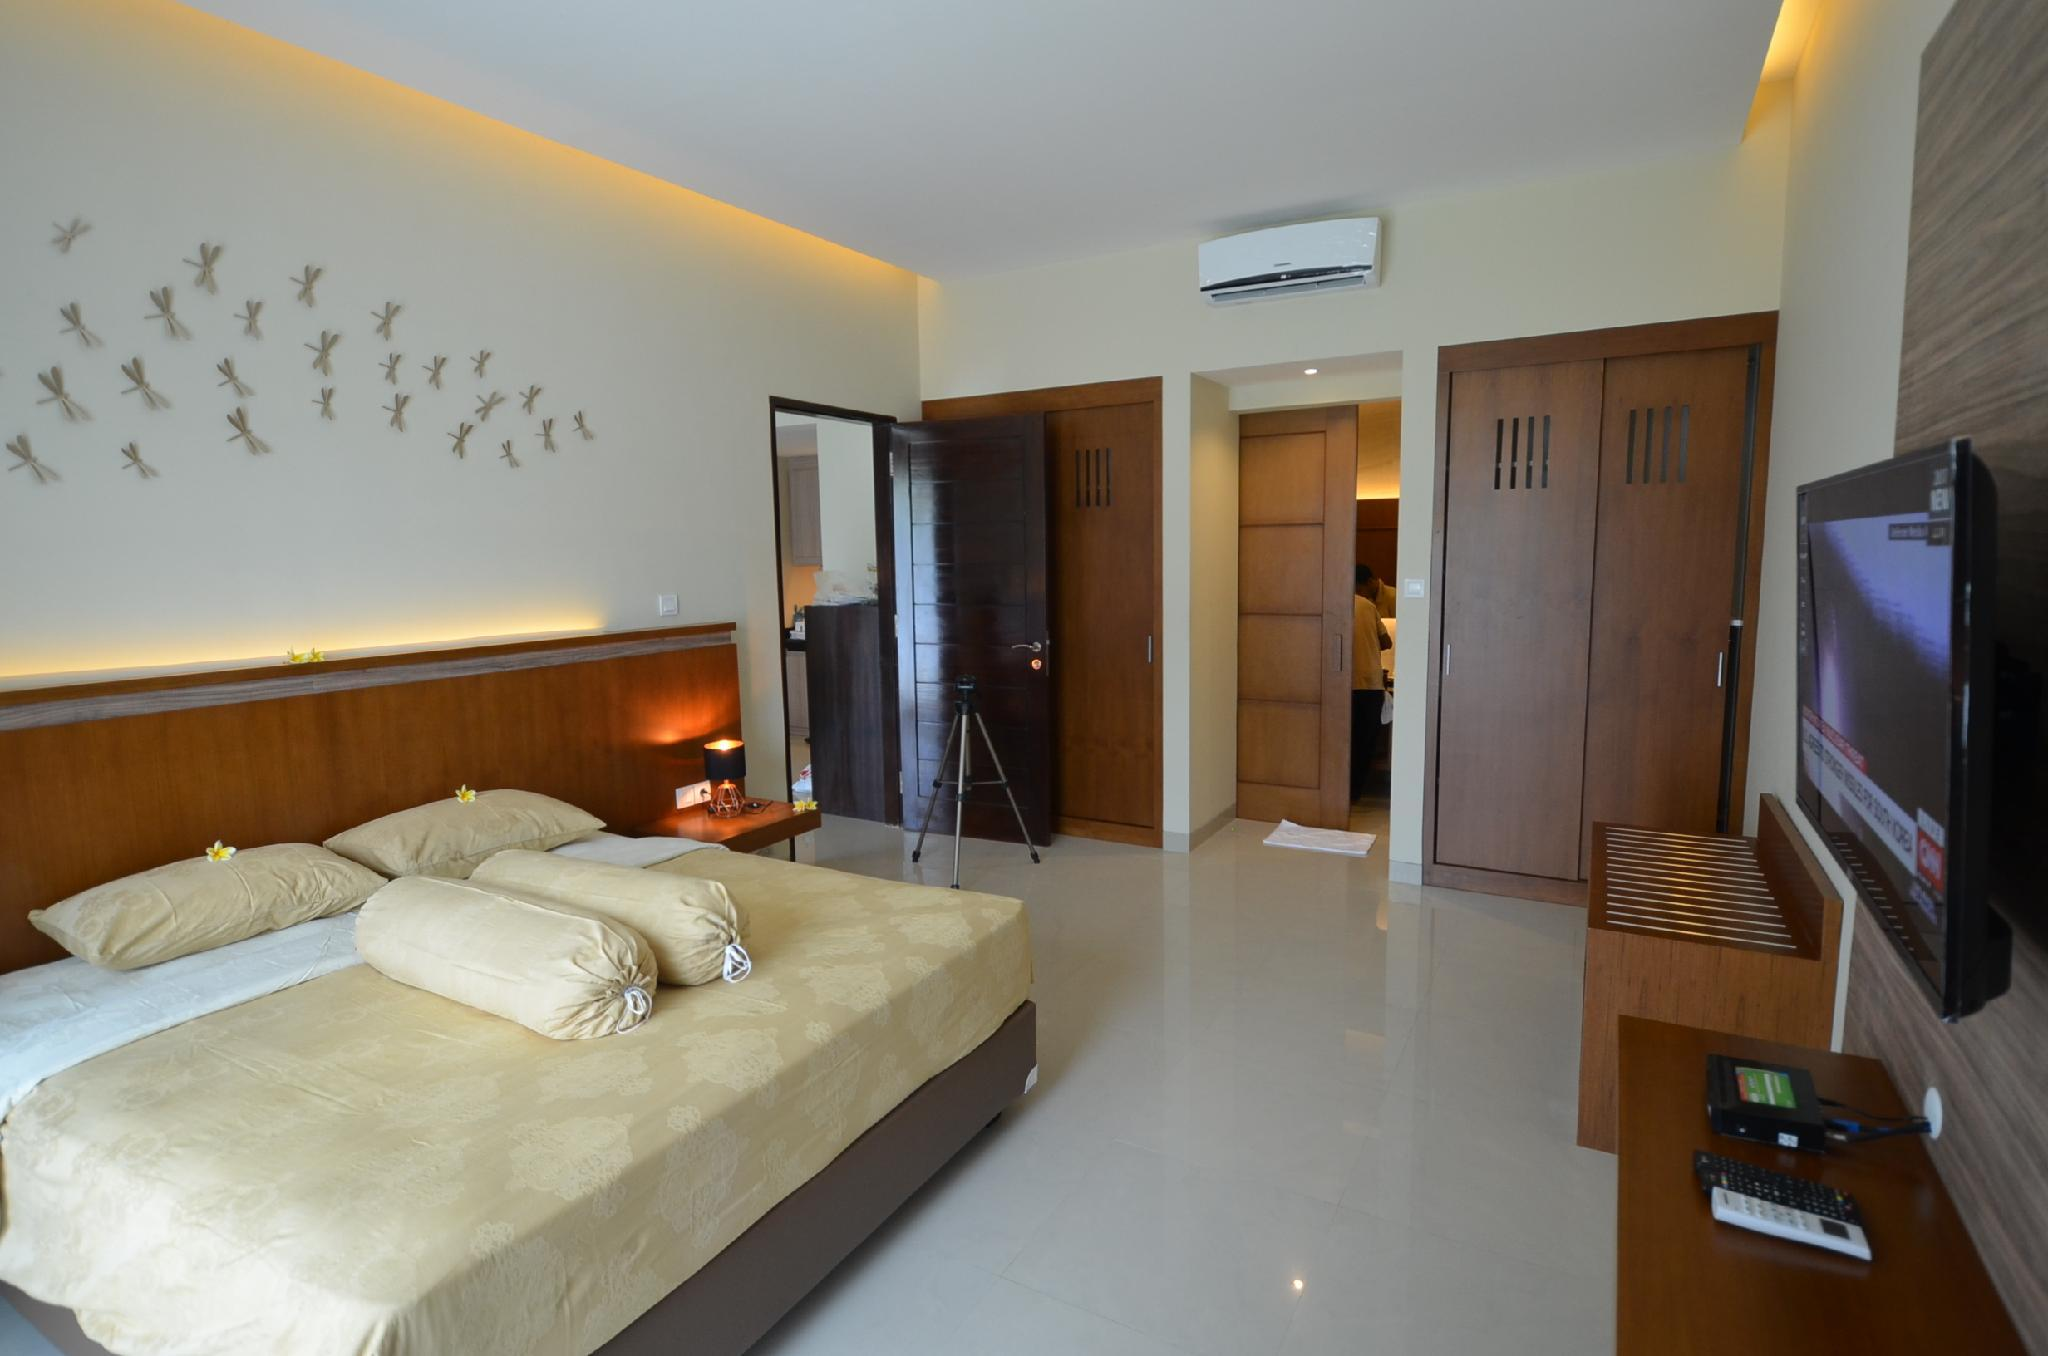 2BR Apartment at Koen's Home 4